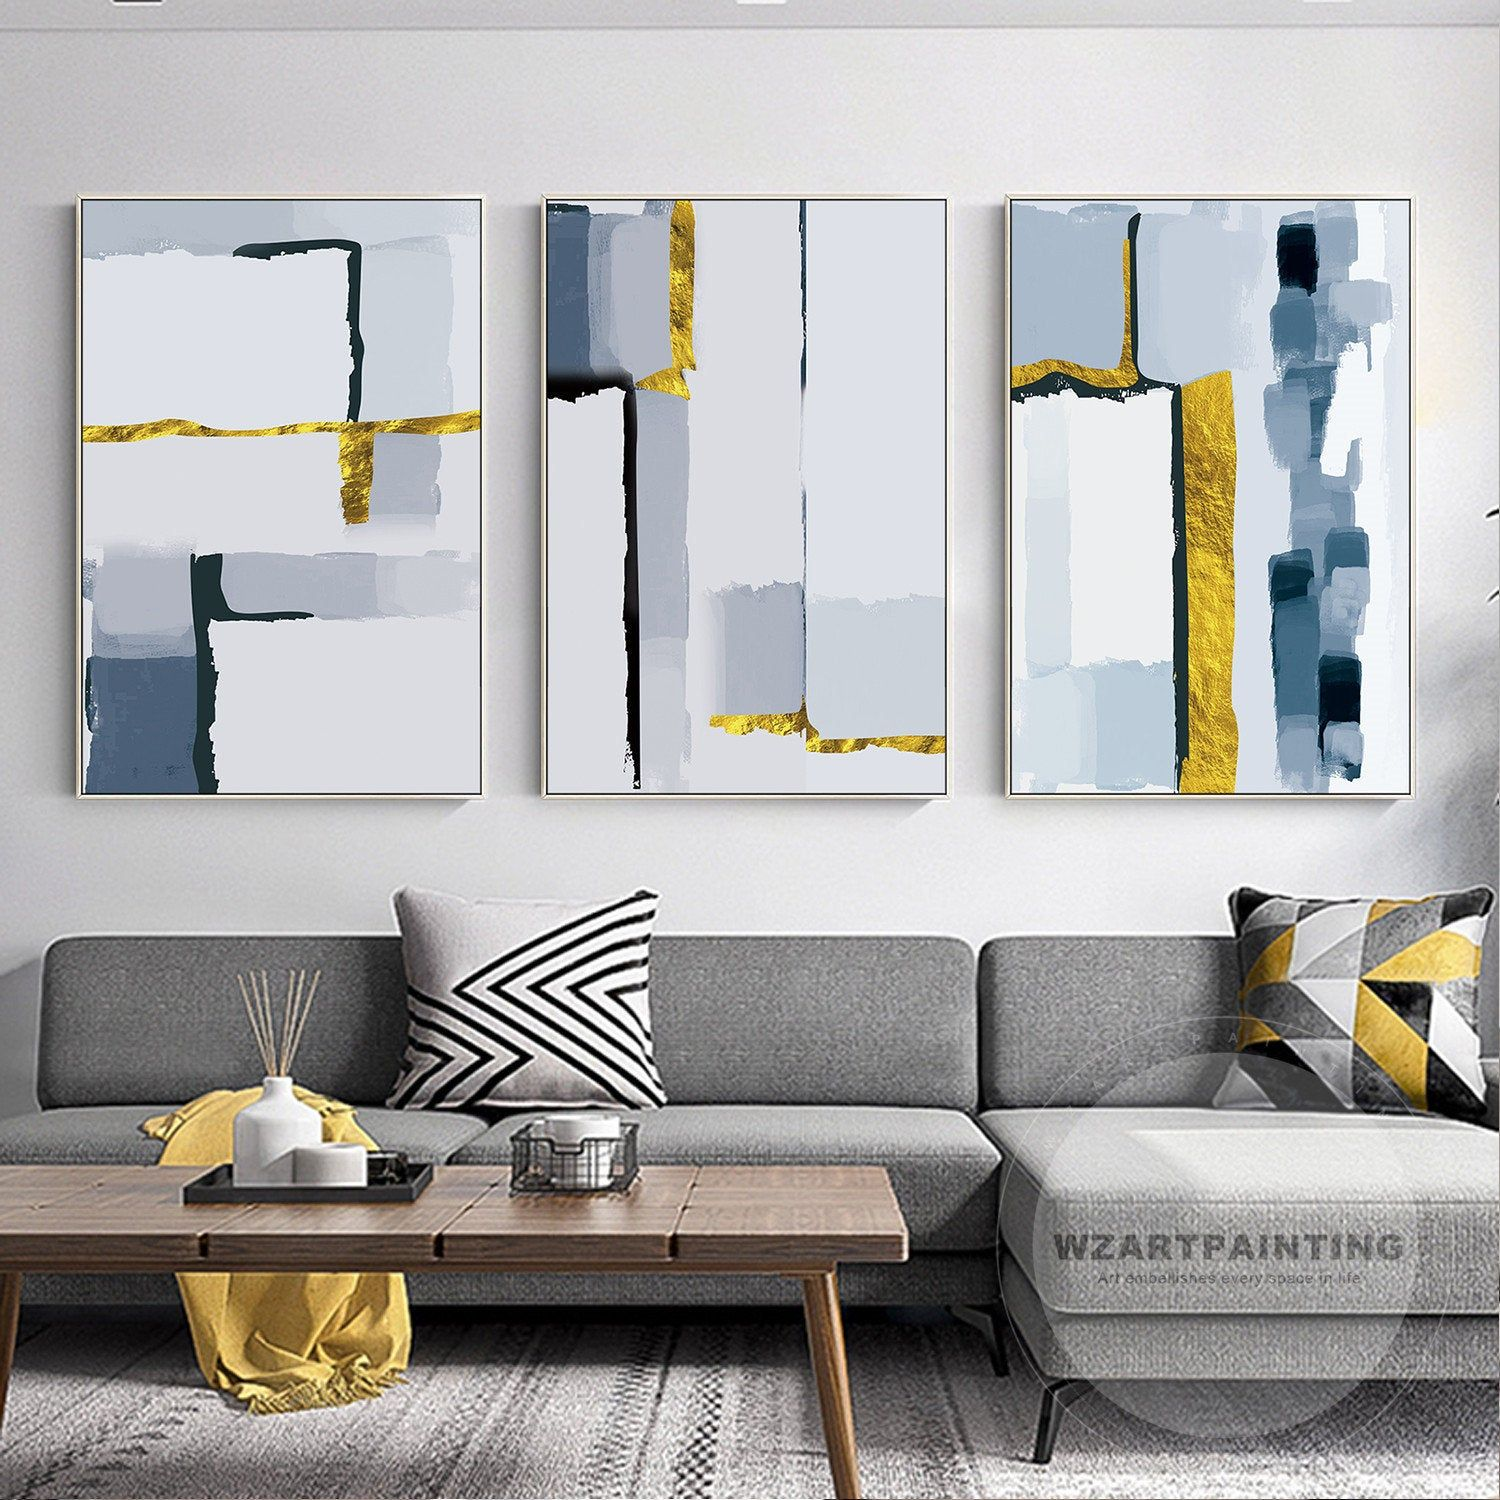 Set Of 3 Prints Framed Wall Art Modern Abstract Gold Navy Blue Print Painting Prints On Canvas L In 2020 Blue Wall Art Contemporary Decor Living Room Abstract Wall Art